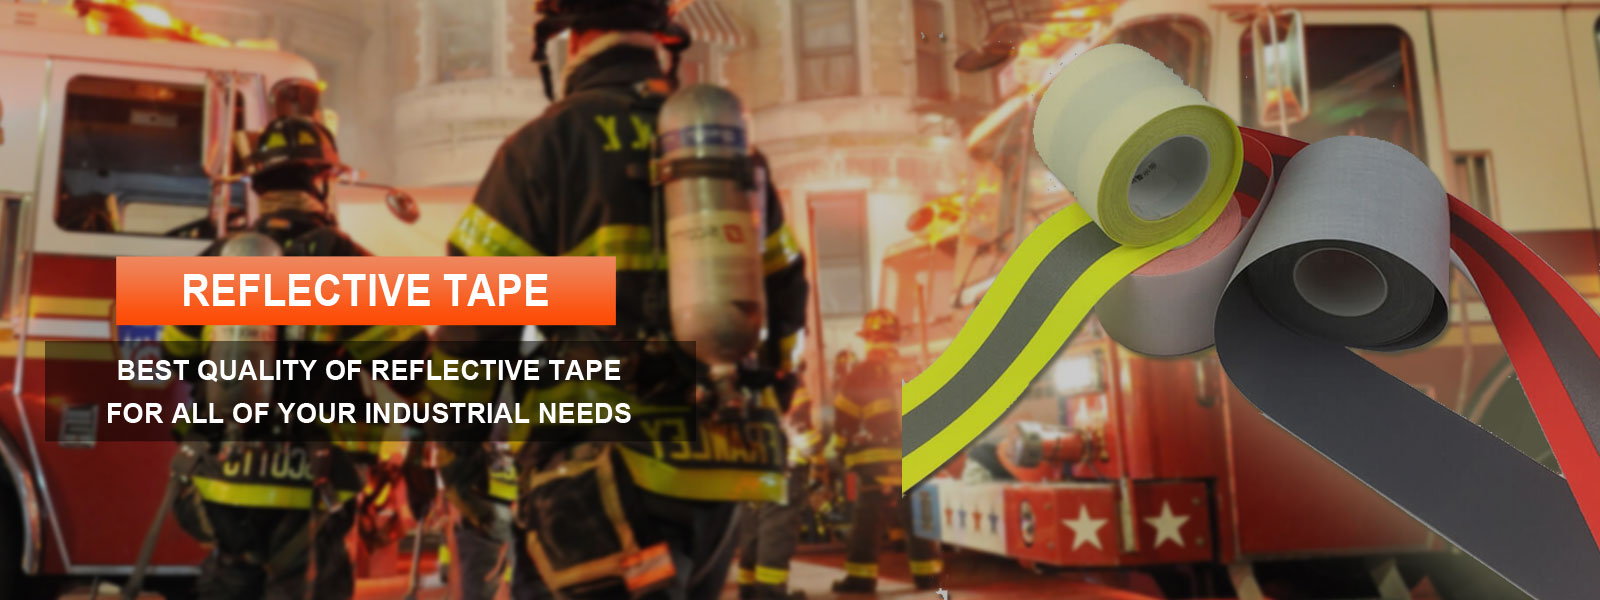 Reflective Tape Manufacturers in Canada